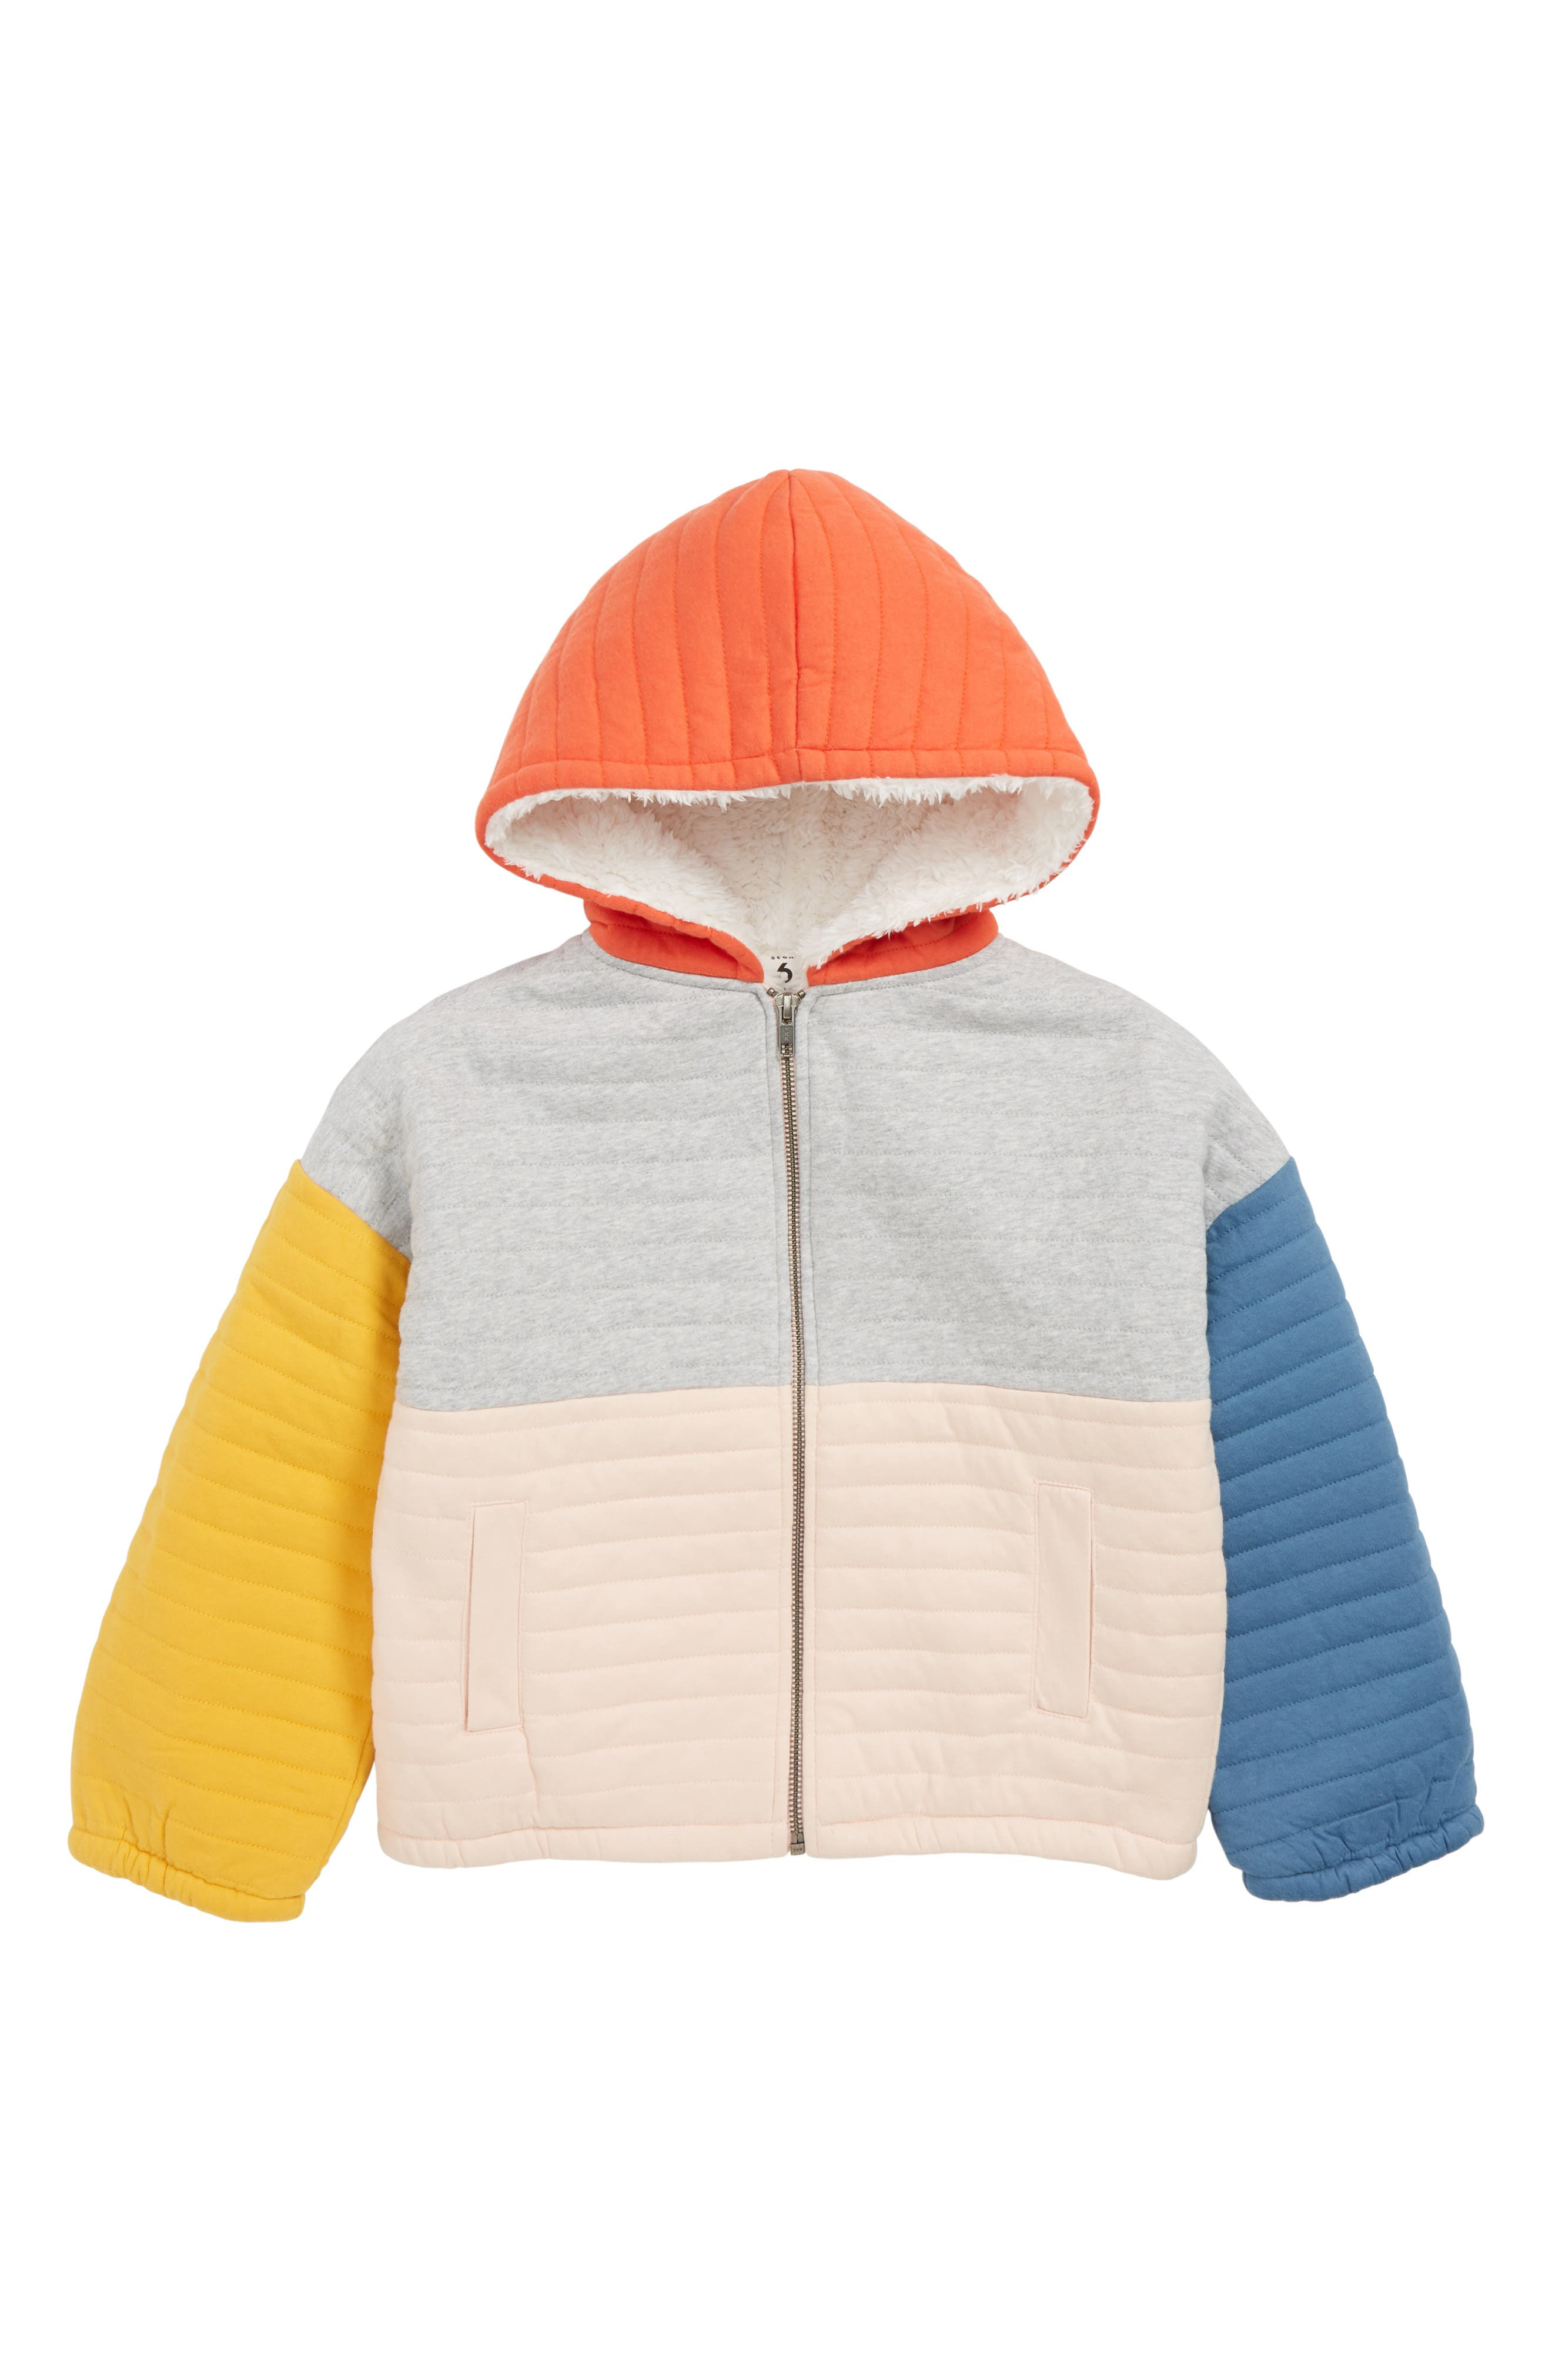 Quilted Jacket with Faux Fur Lining,                             Main thumbnail 1, color,                             050